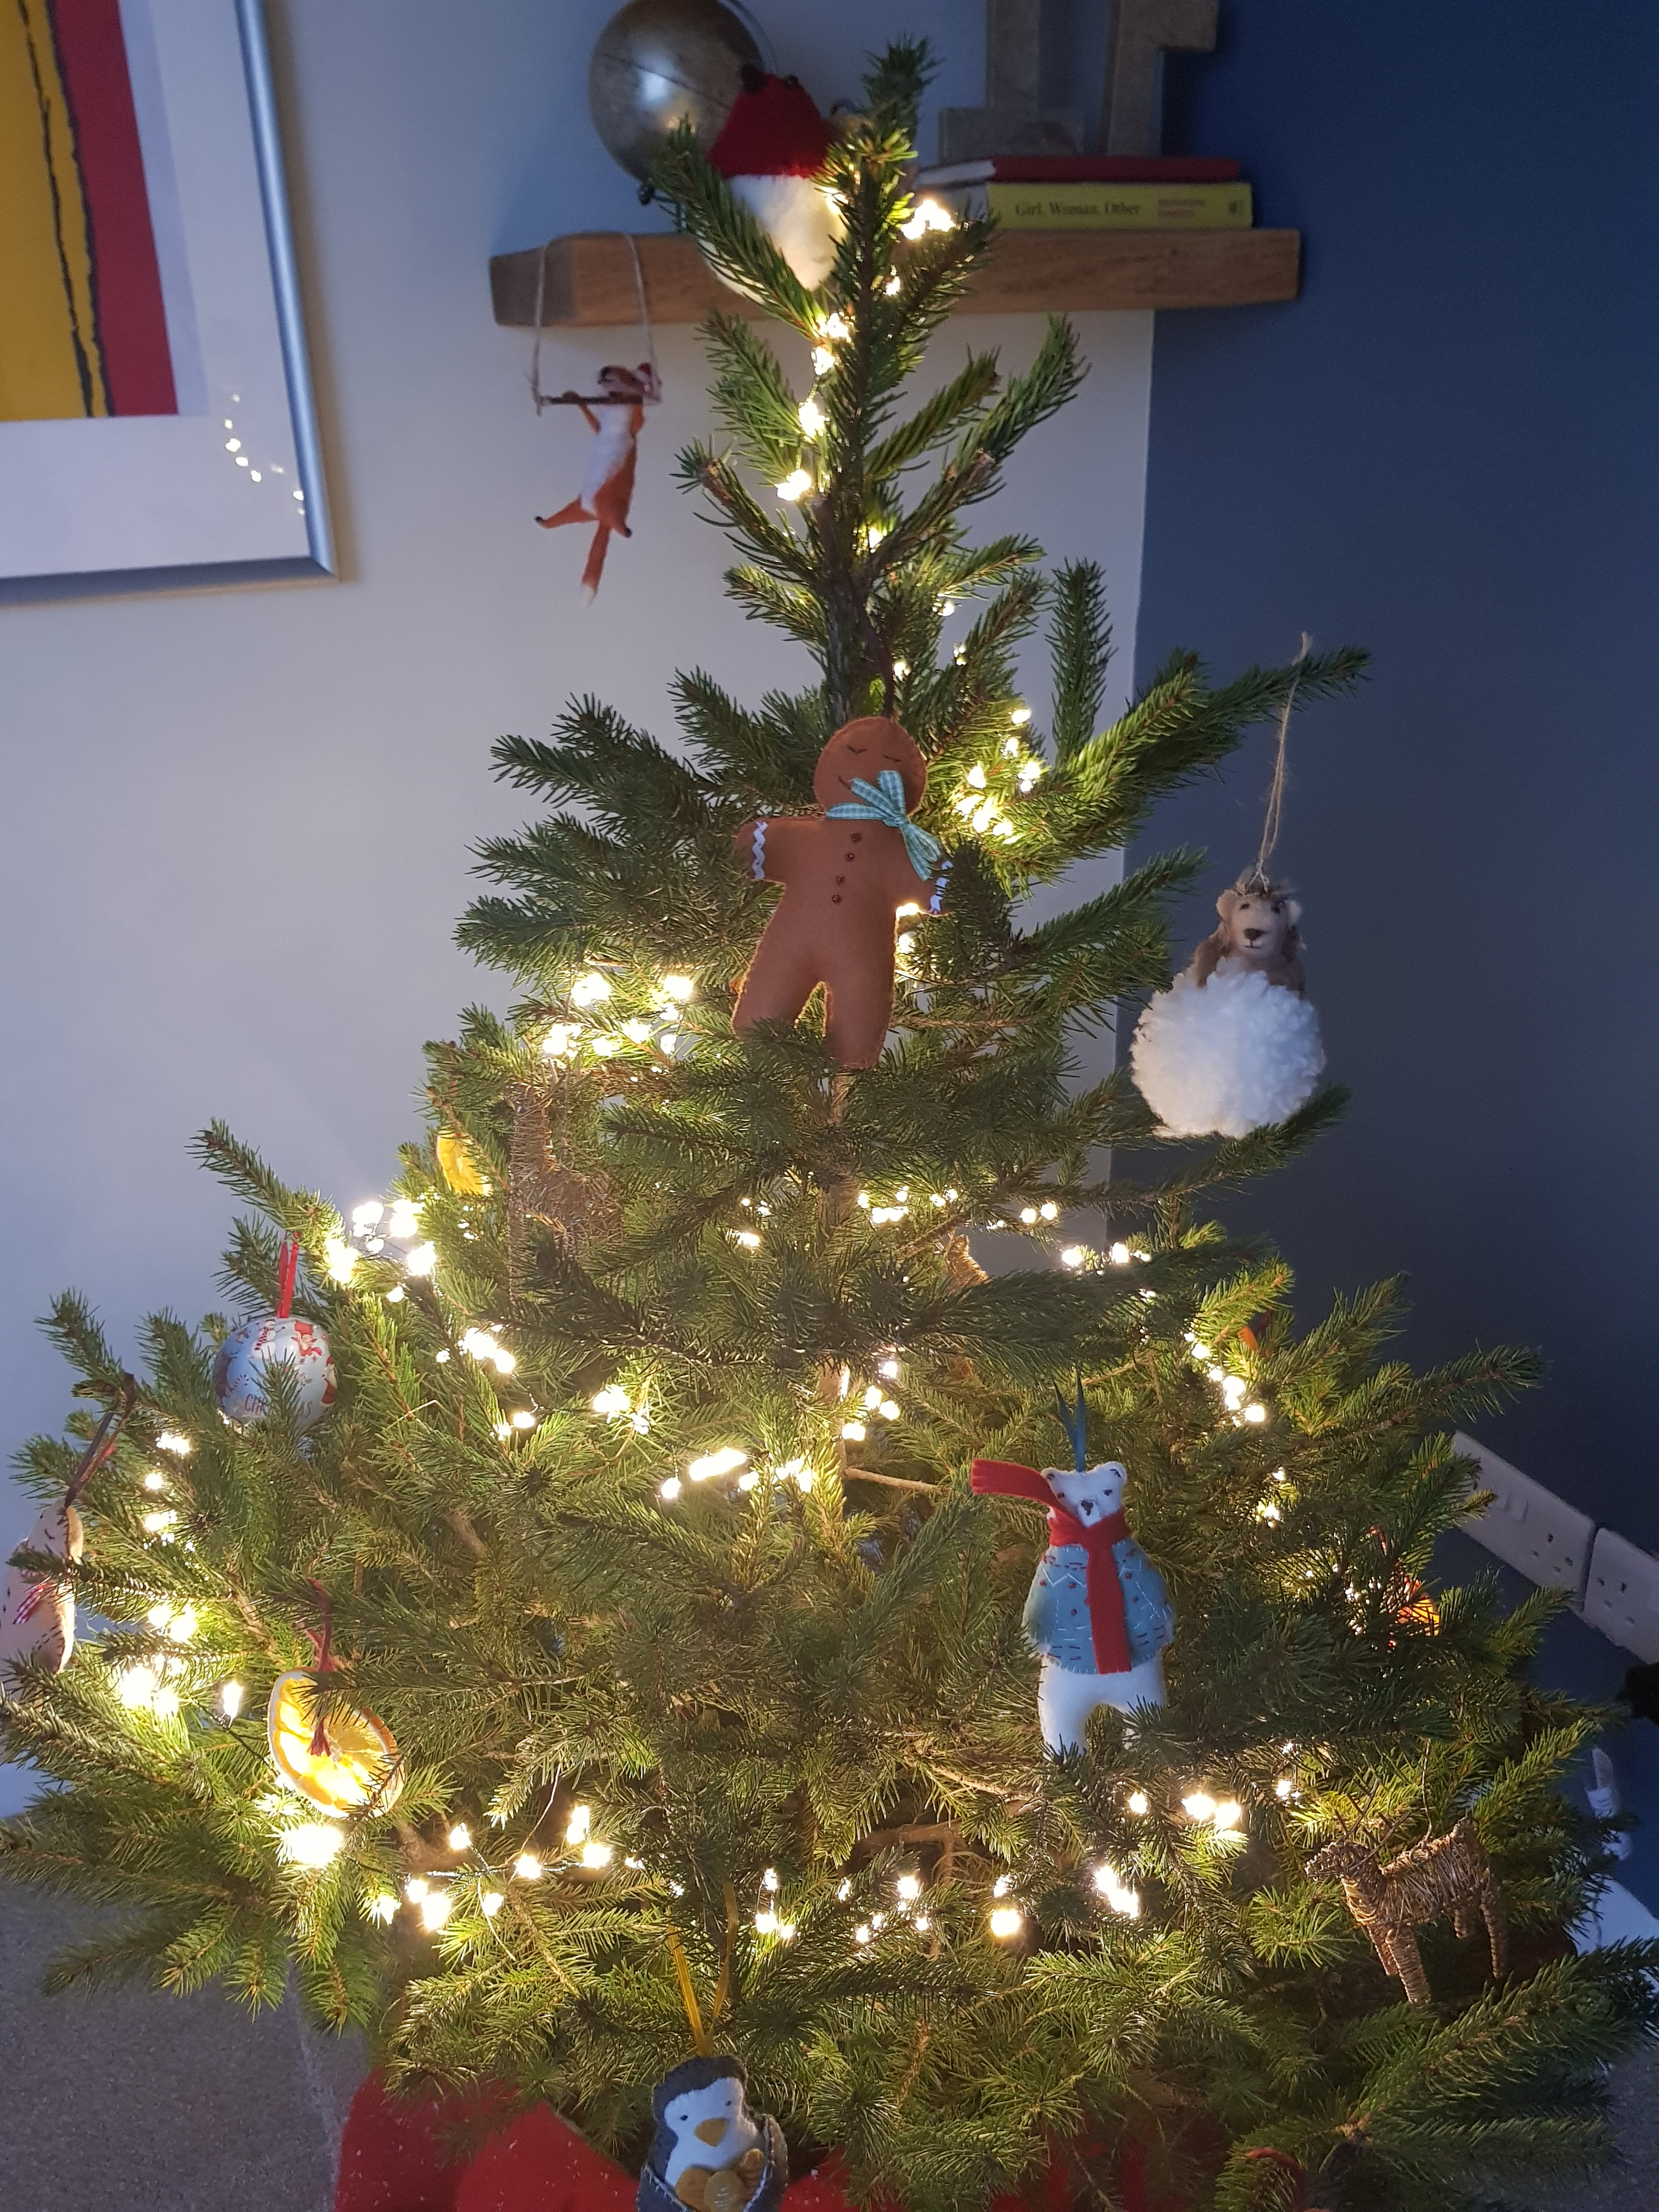 Natural Christmas Tree with fairy lights wrapped round it and an assortment of baubles. In the background on the left is the edge of a silver frame with part of a yellow and red screen print. On the right is a shelf with a globe, books and a felt fox with a christmas hat.